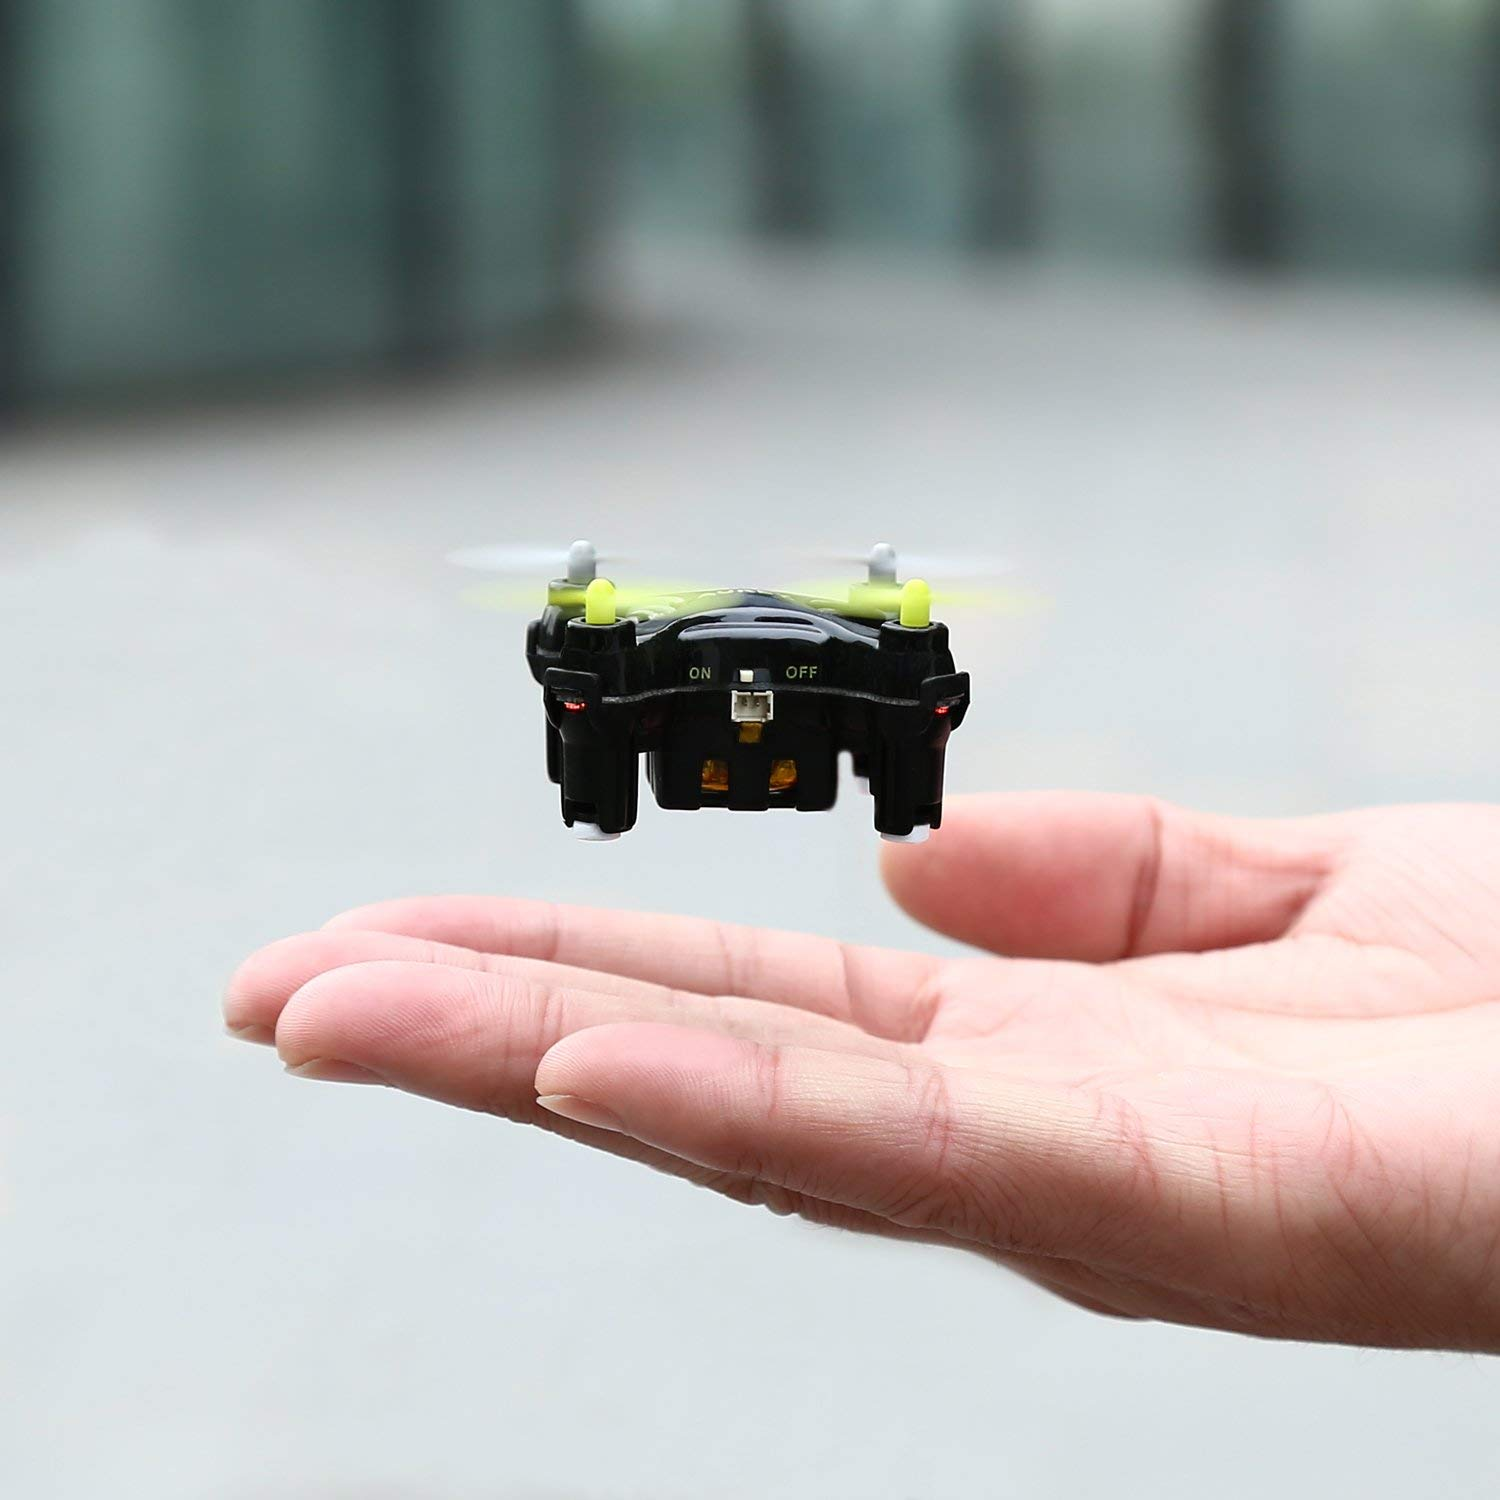 Modern Mini Drone: Bring Out Your Piloting Skills!